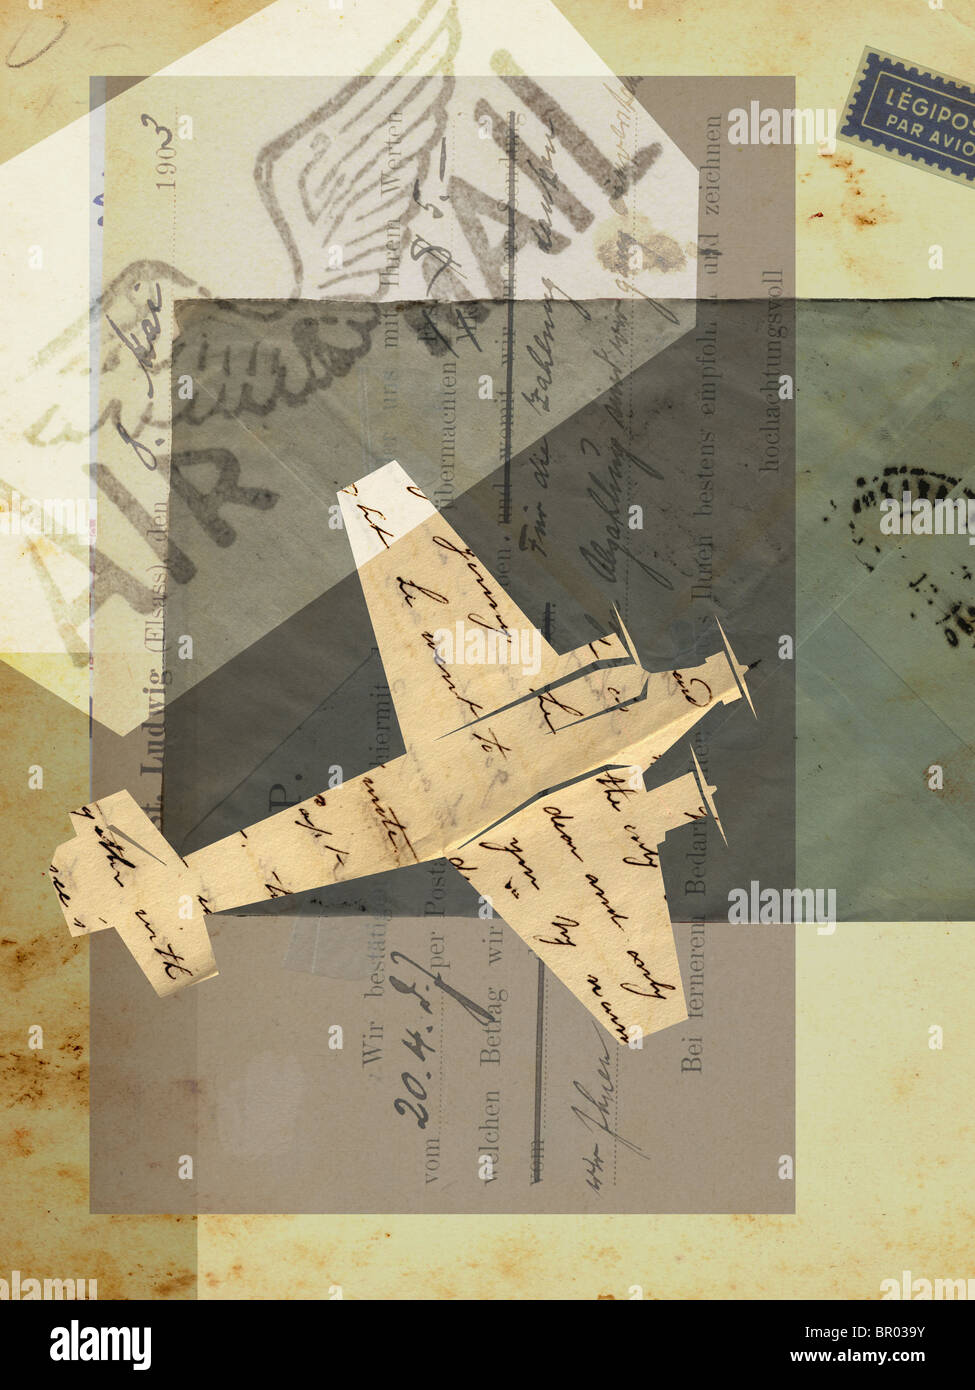 Collage with an airplane, air mail, vintage letters and stamps - Stock Image